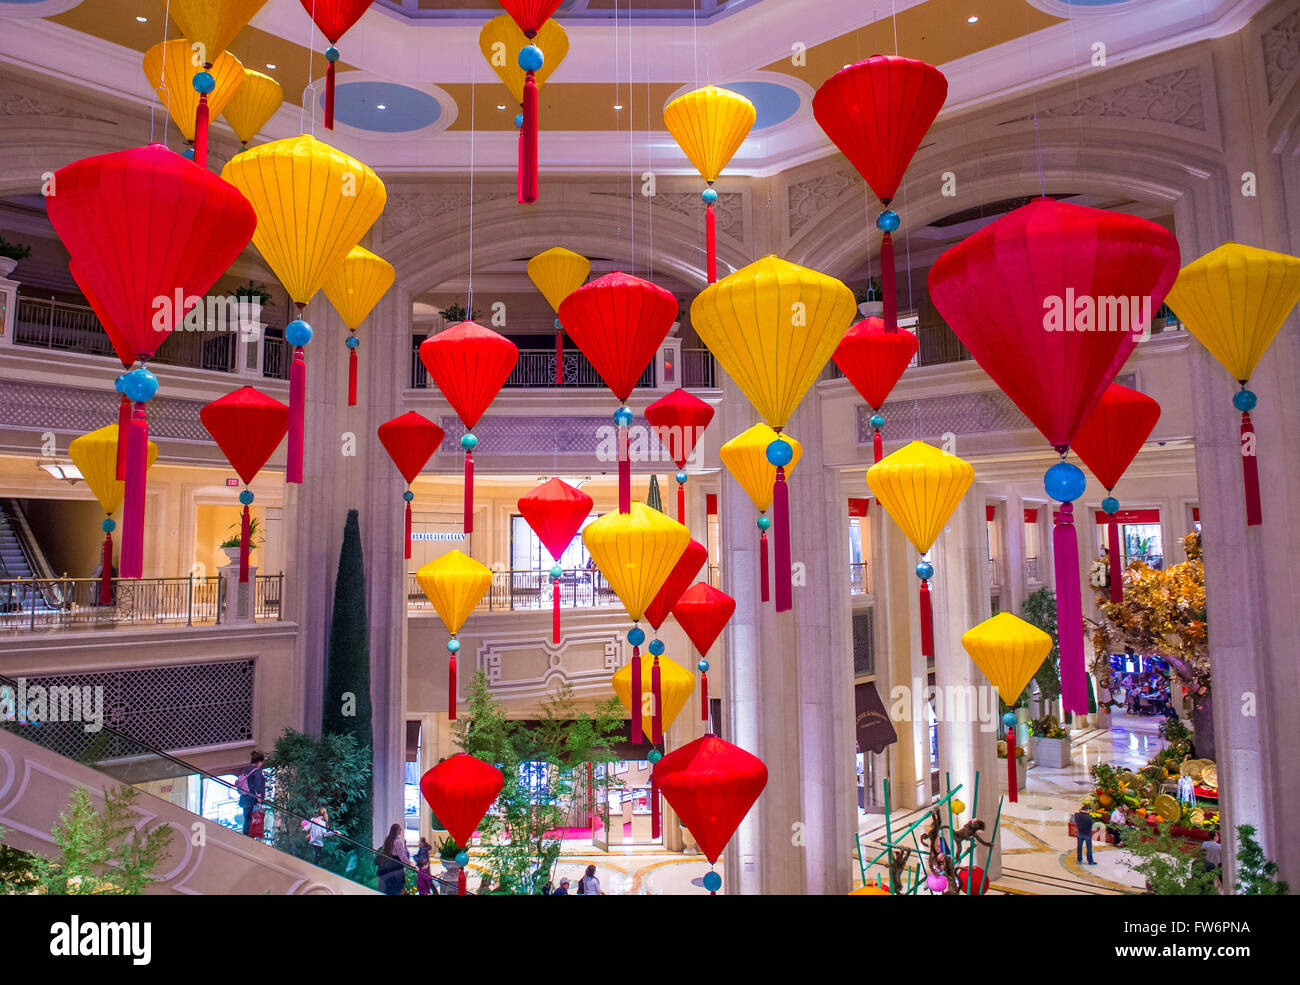 Chinese New Year Decorations At The Venetian Hotel